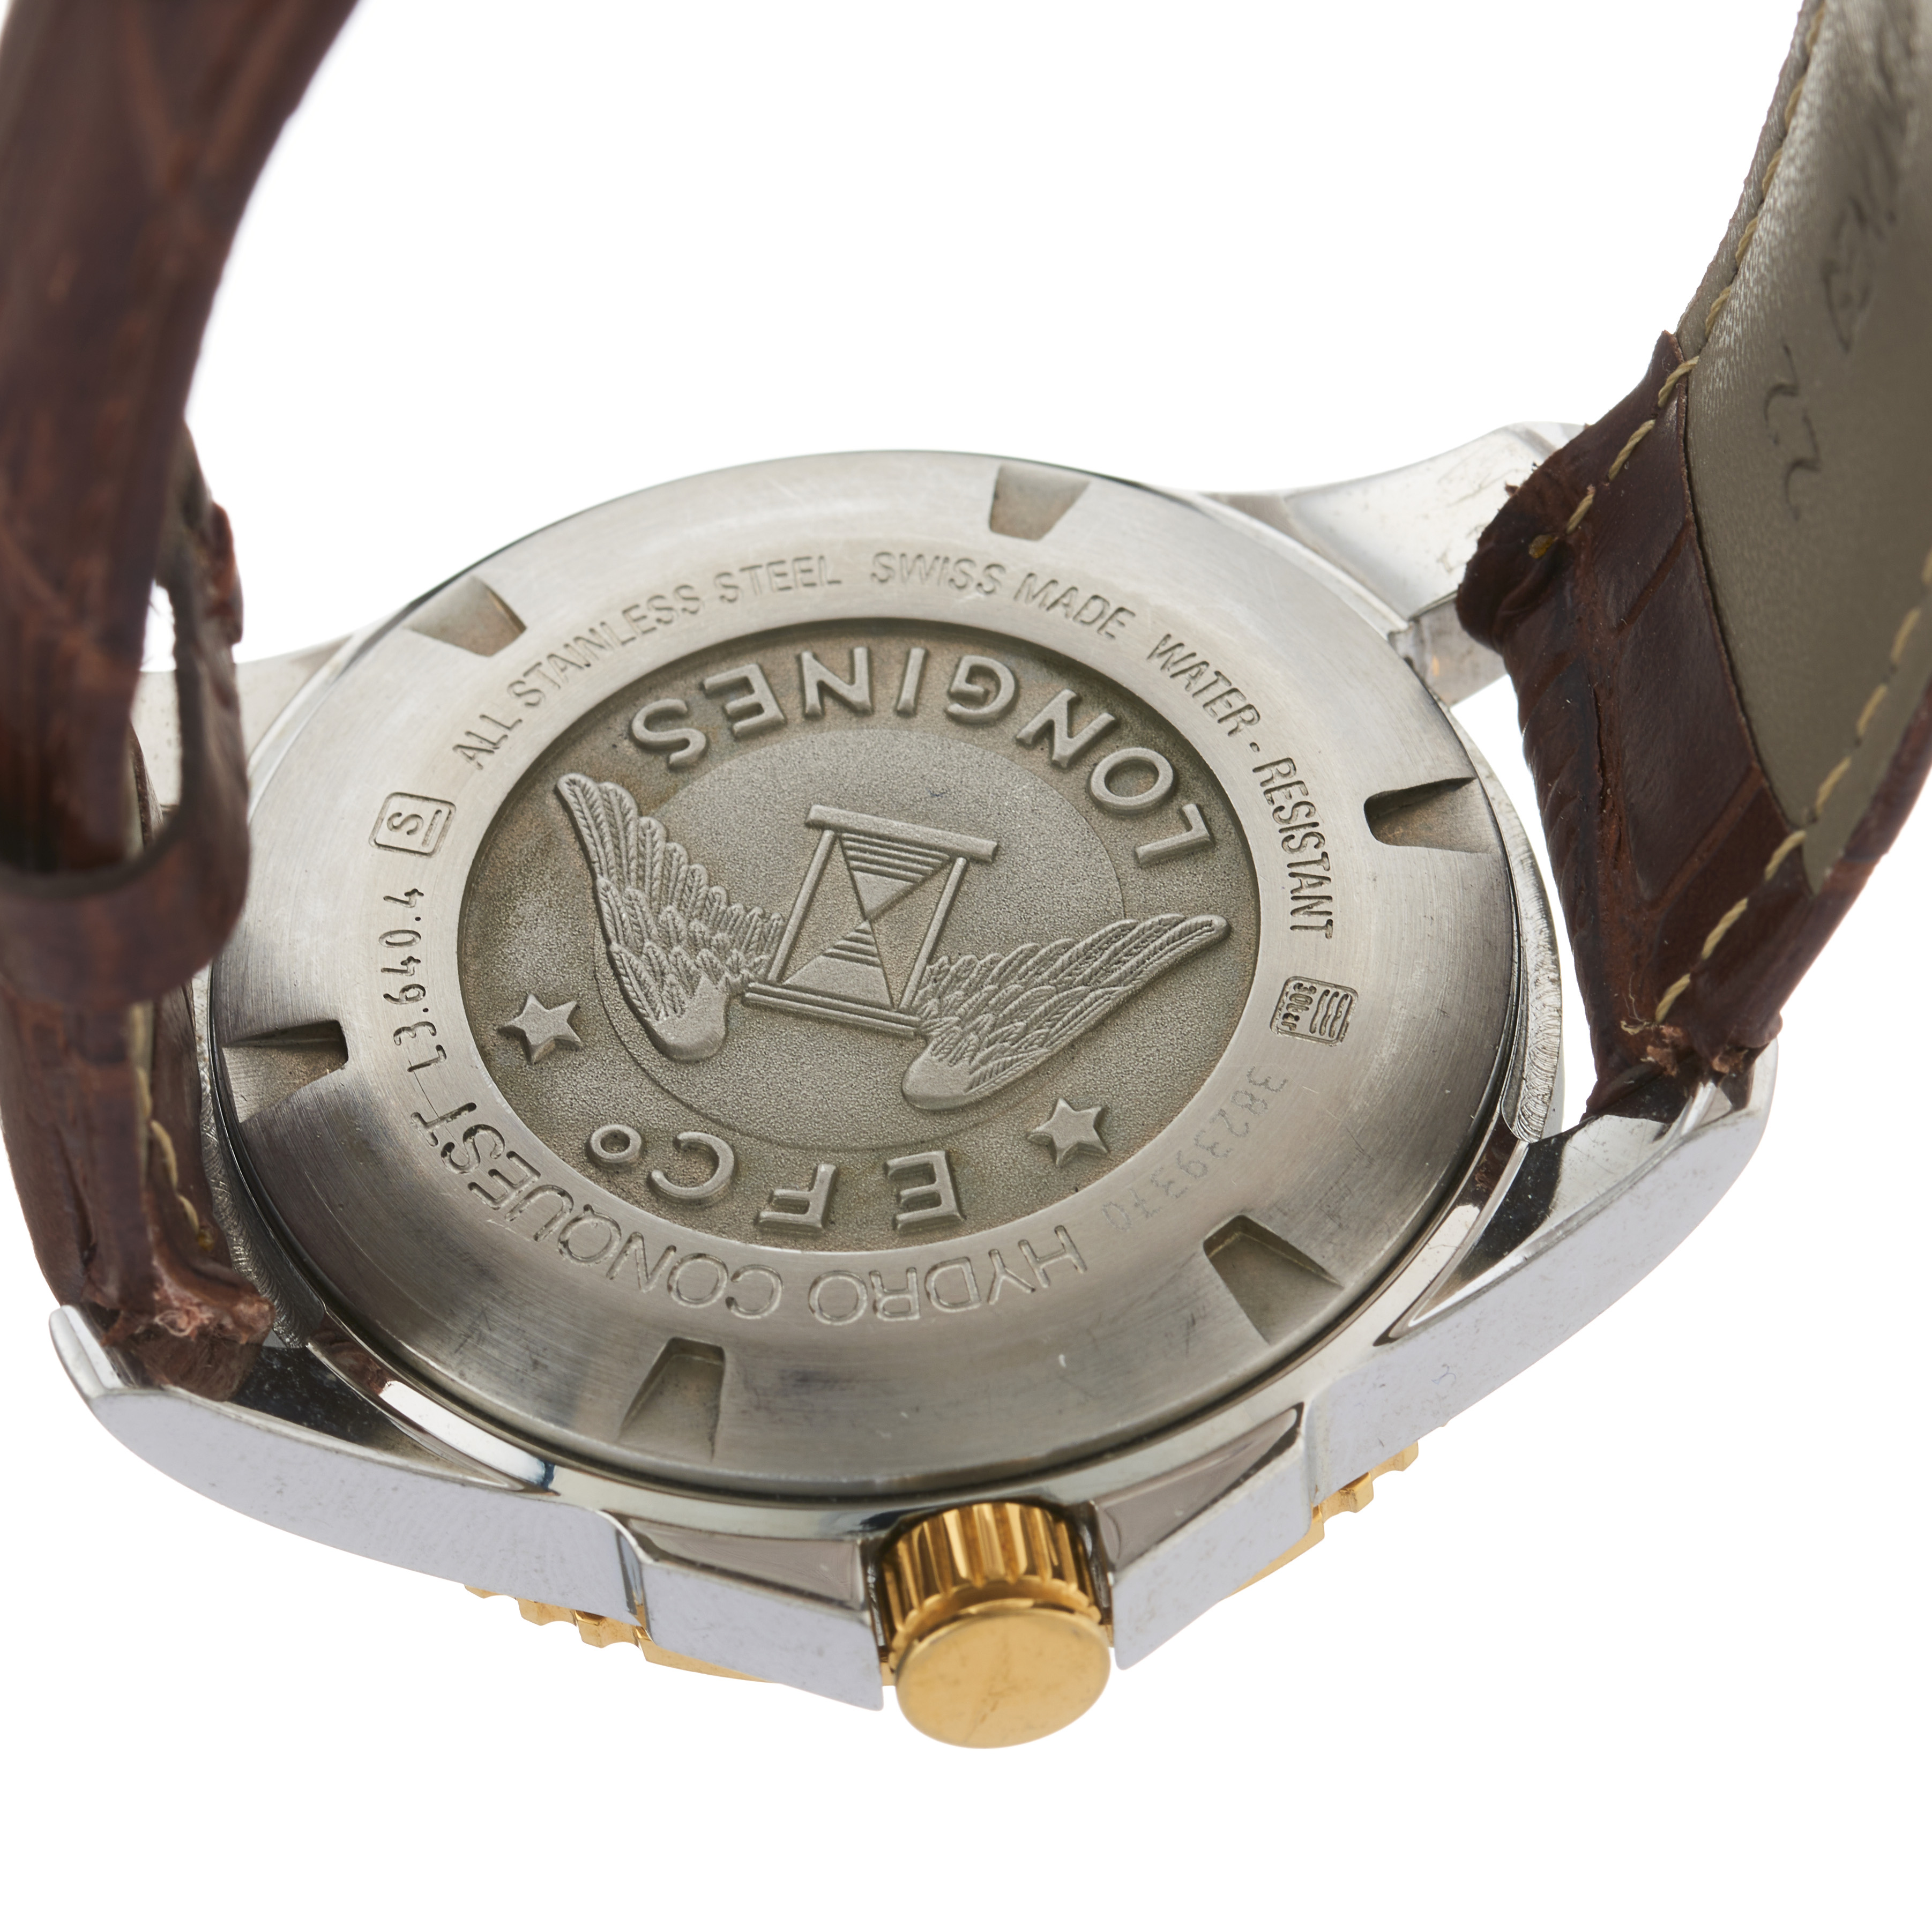 Longines, a stainless steel Hydro Conquest wrist watch - Image 2 of 3